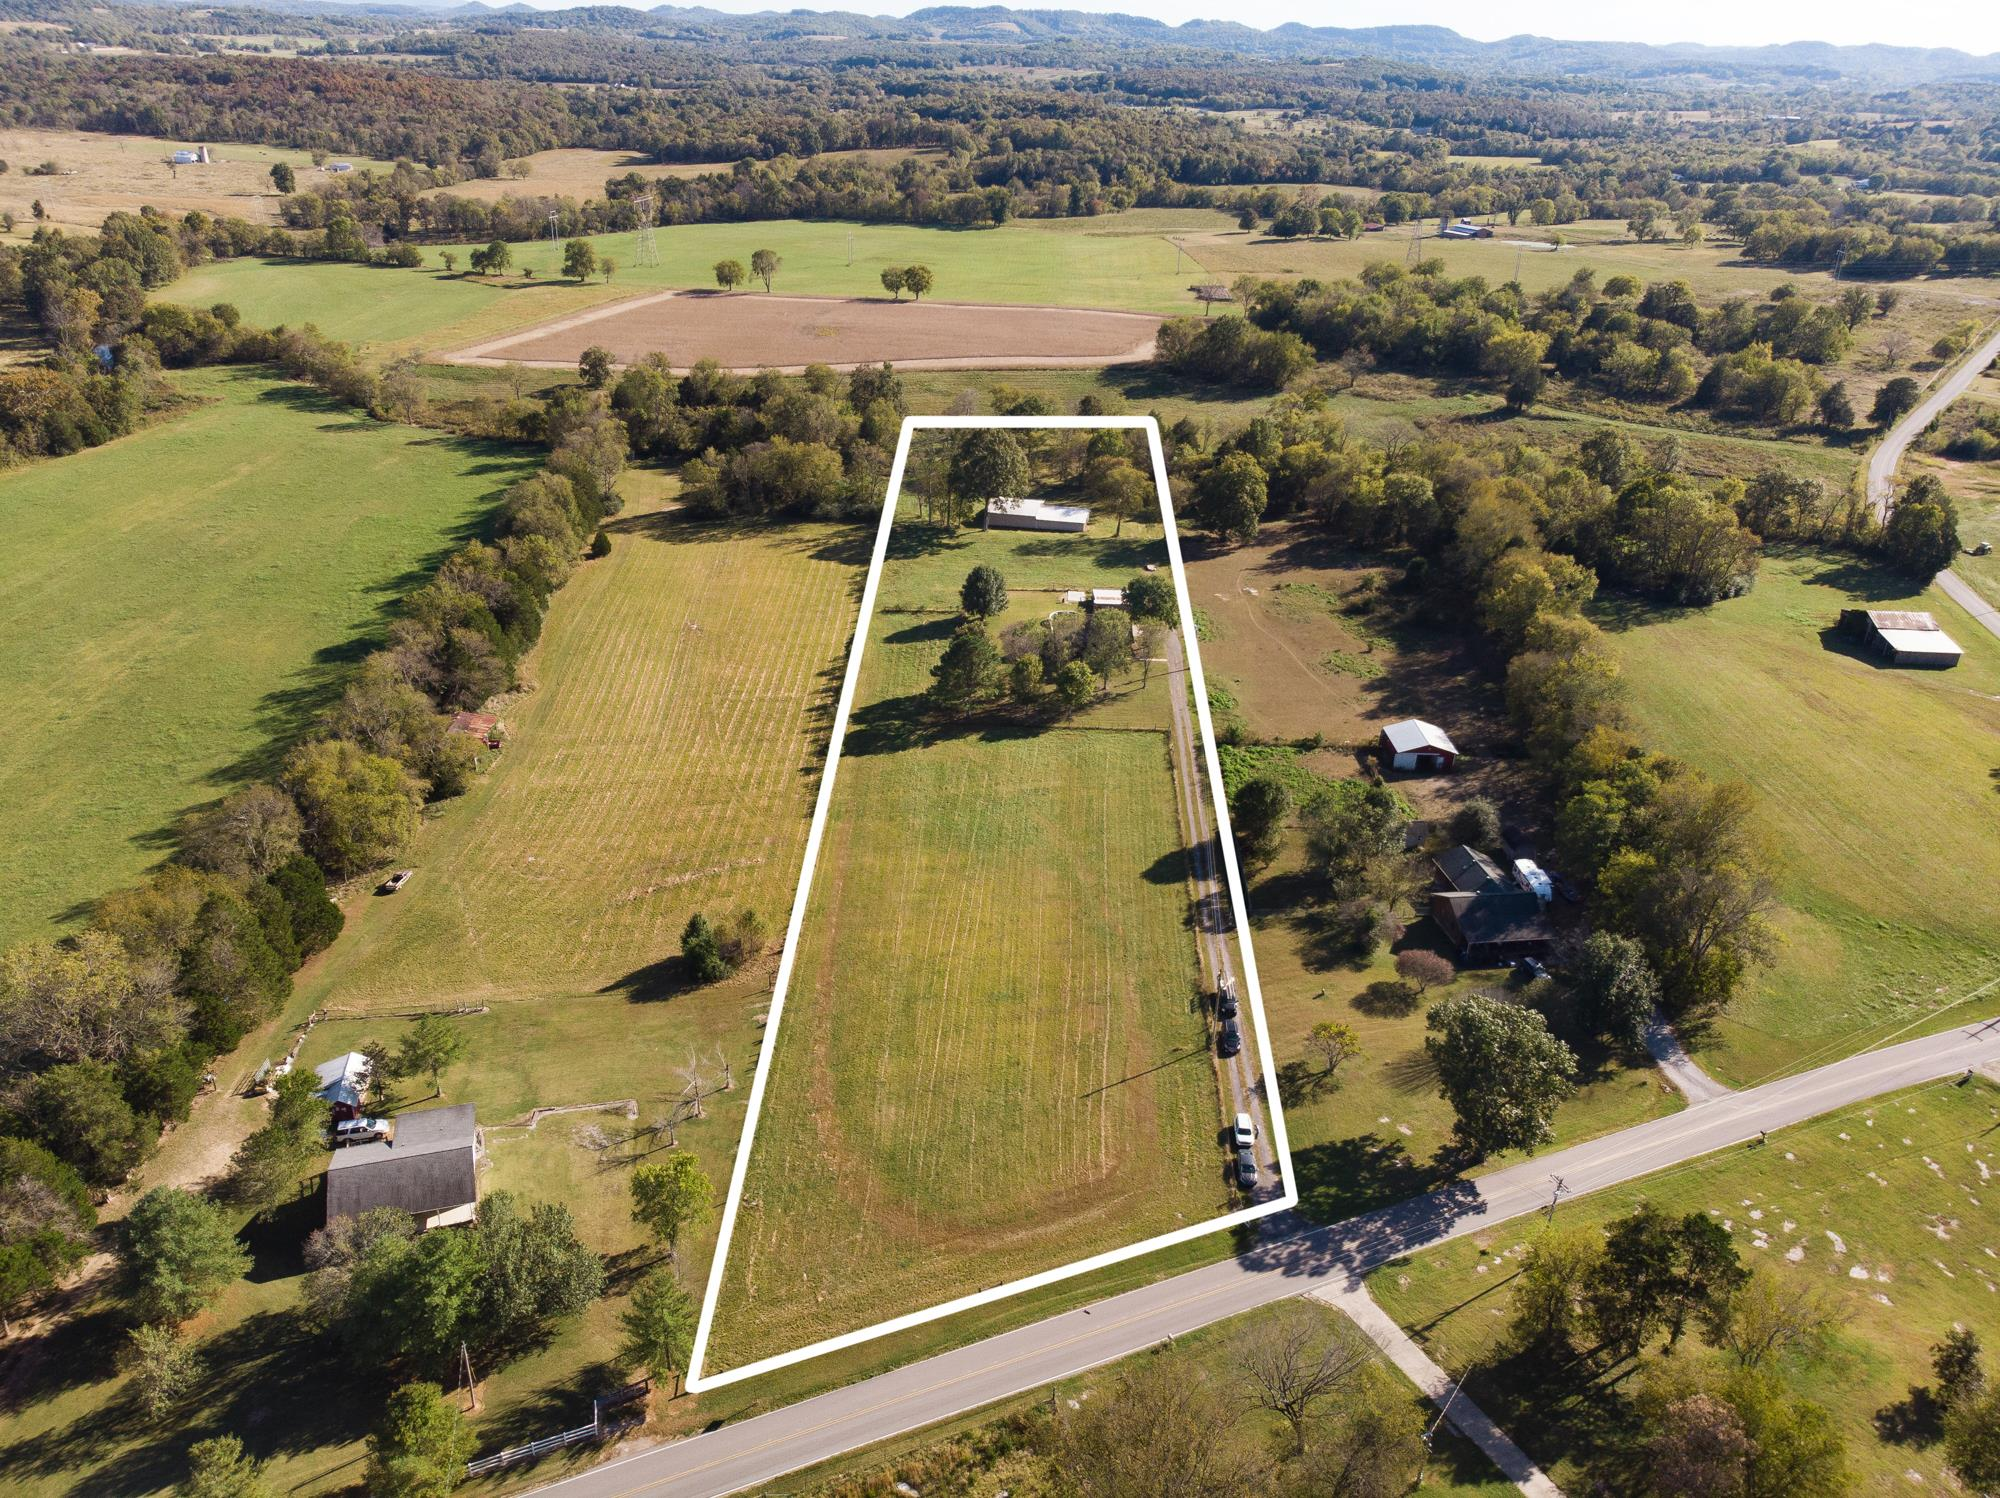 3809 S Commerce Rd, Watertown, TN 37184 - Watertown, TN real estate listing